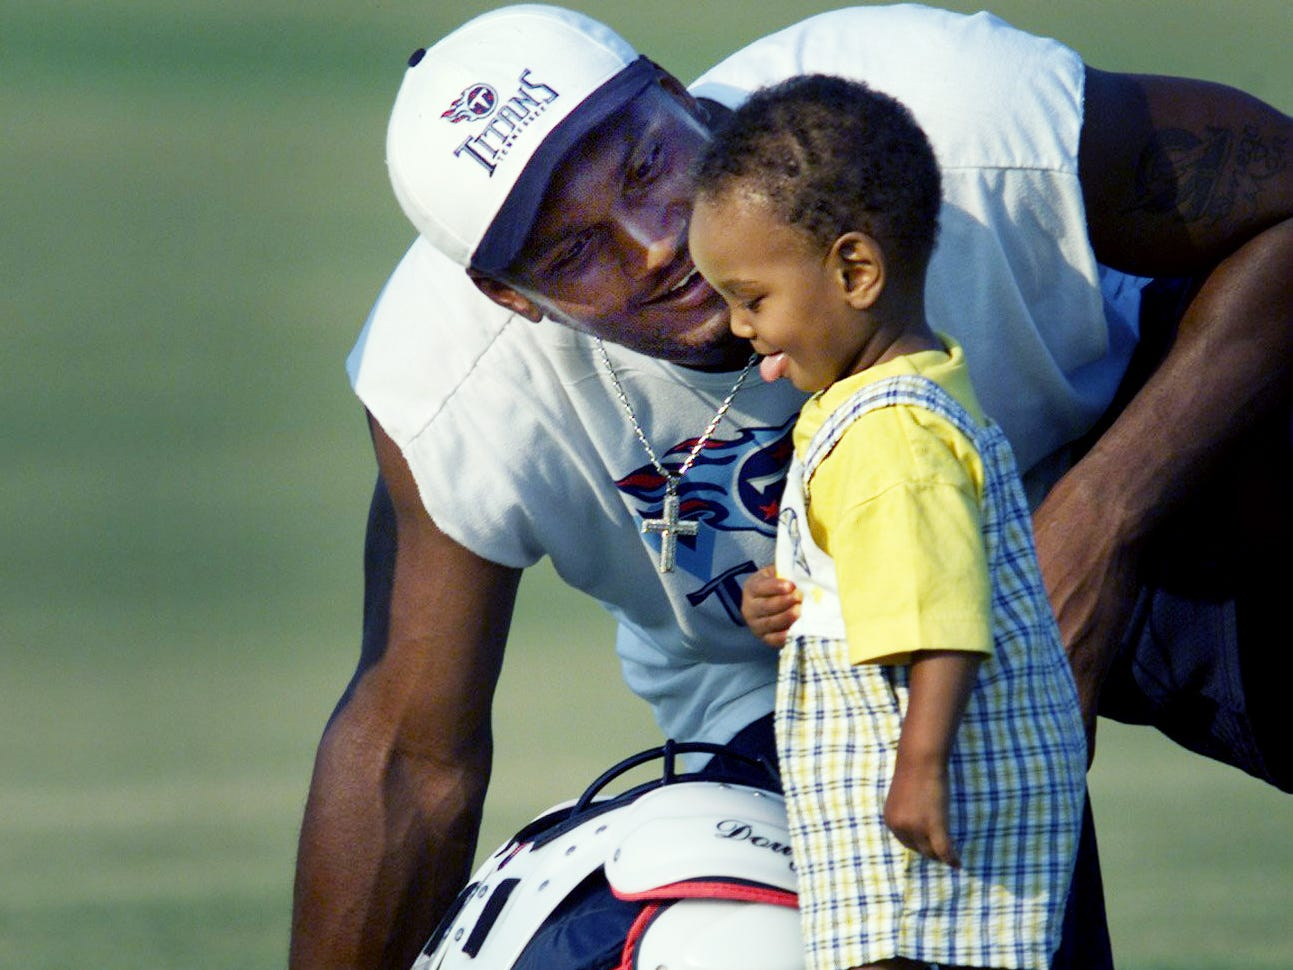 Tennessee Titans quarterback Steve McNair hangs out with his son Tyler, 11-months-old, after practice during training camp in Bellevue Aug. 10, 1999.